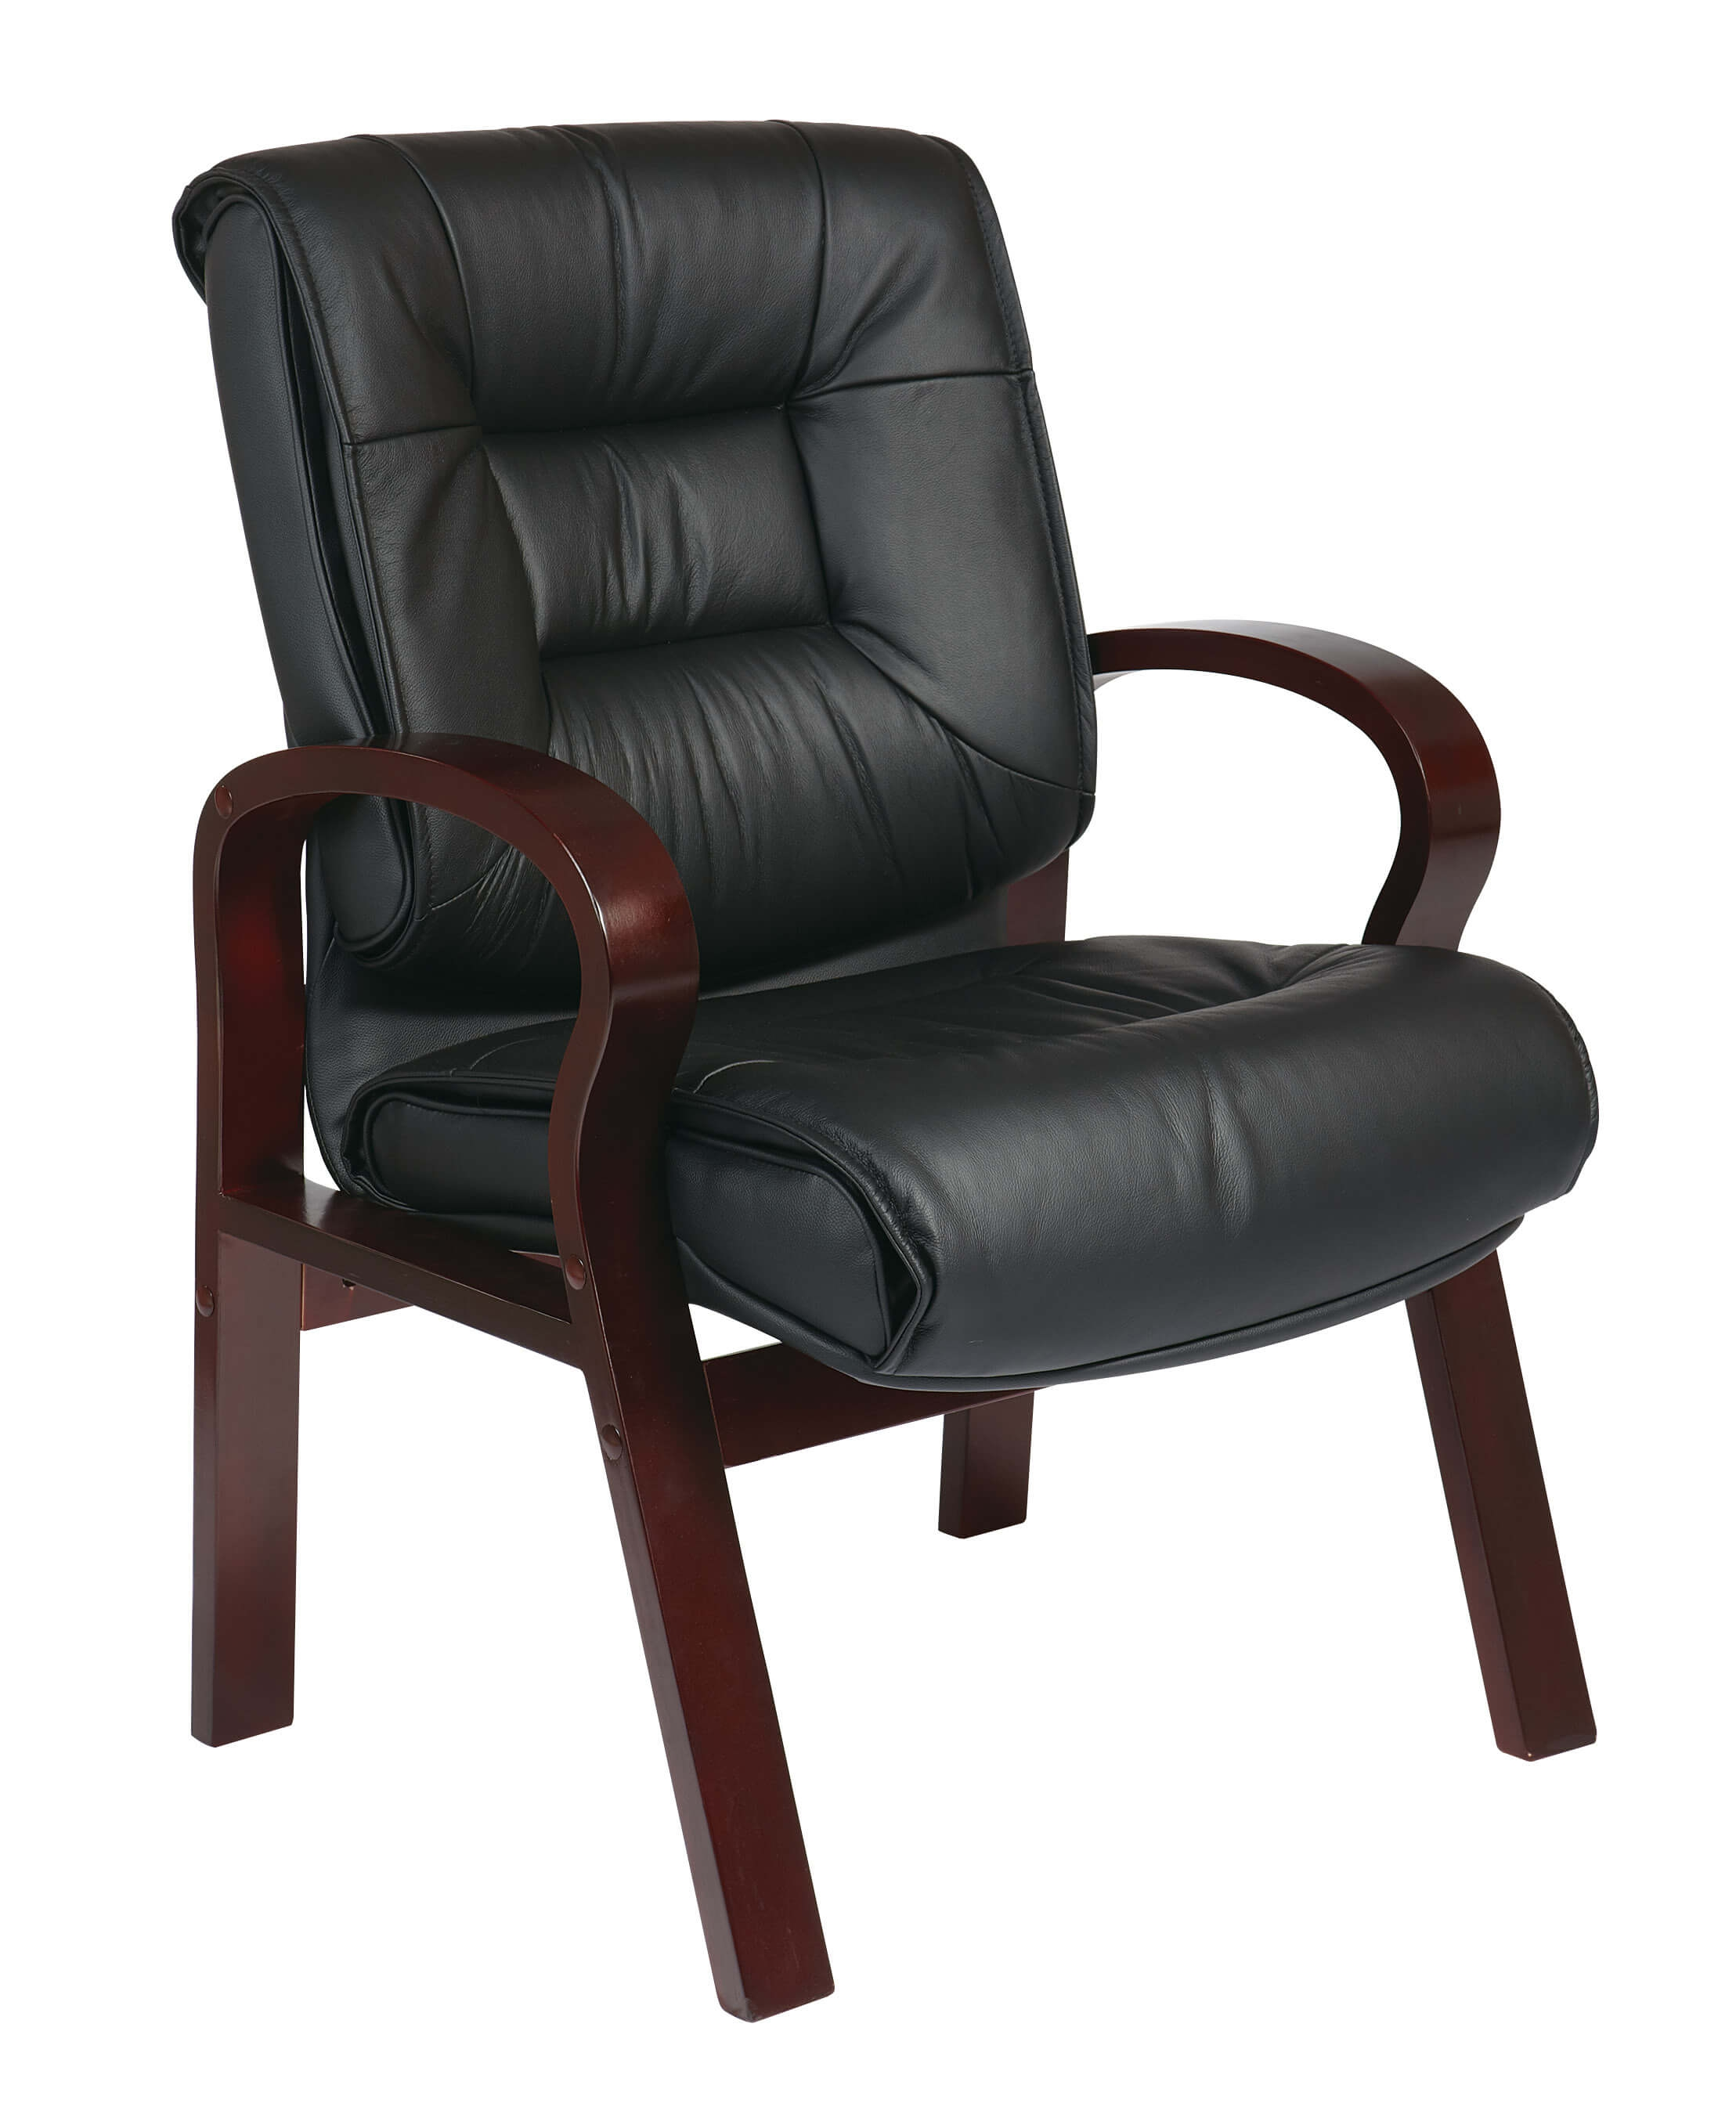 office-waiting-room-chairs-leather-guest-chair.jpg